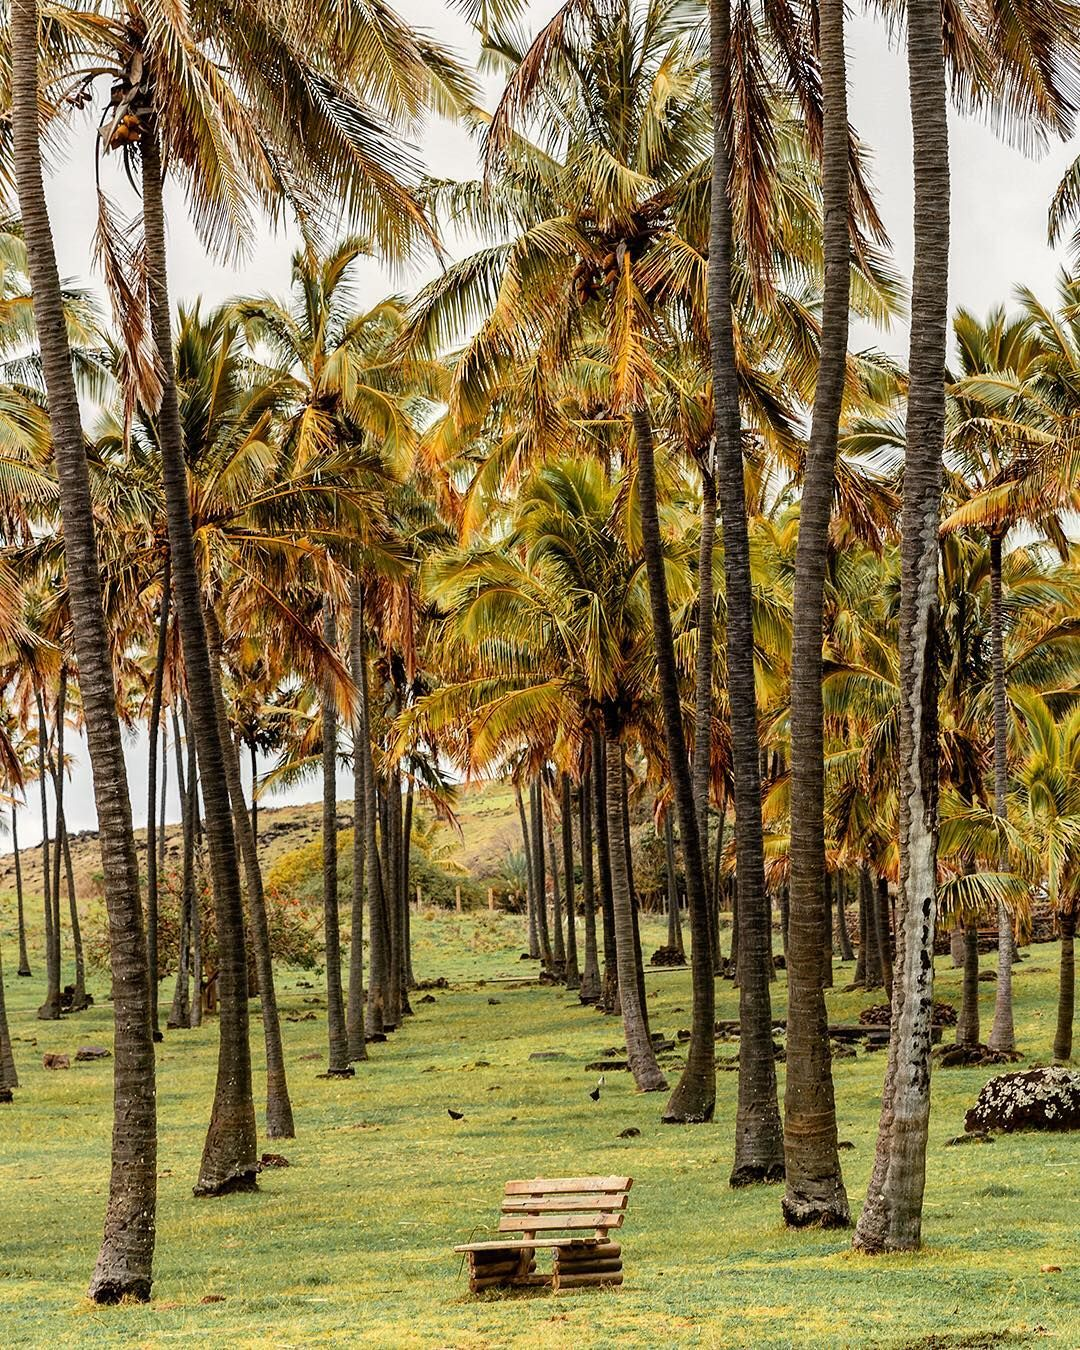 Easter Island Beaches: Follow The Palm-tree Lined Path To The White Sands Of This